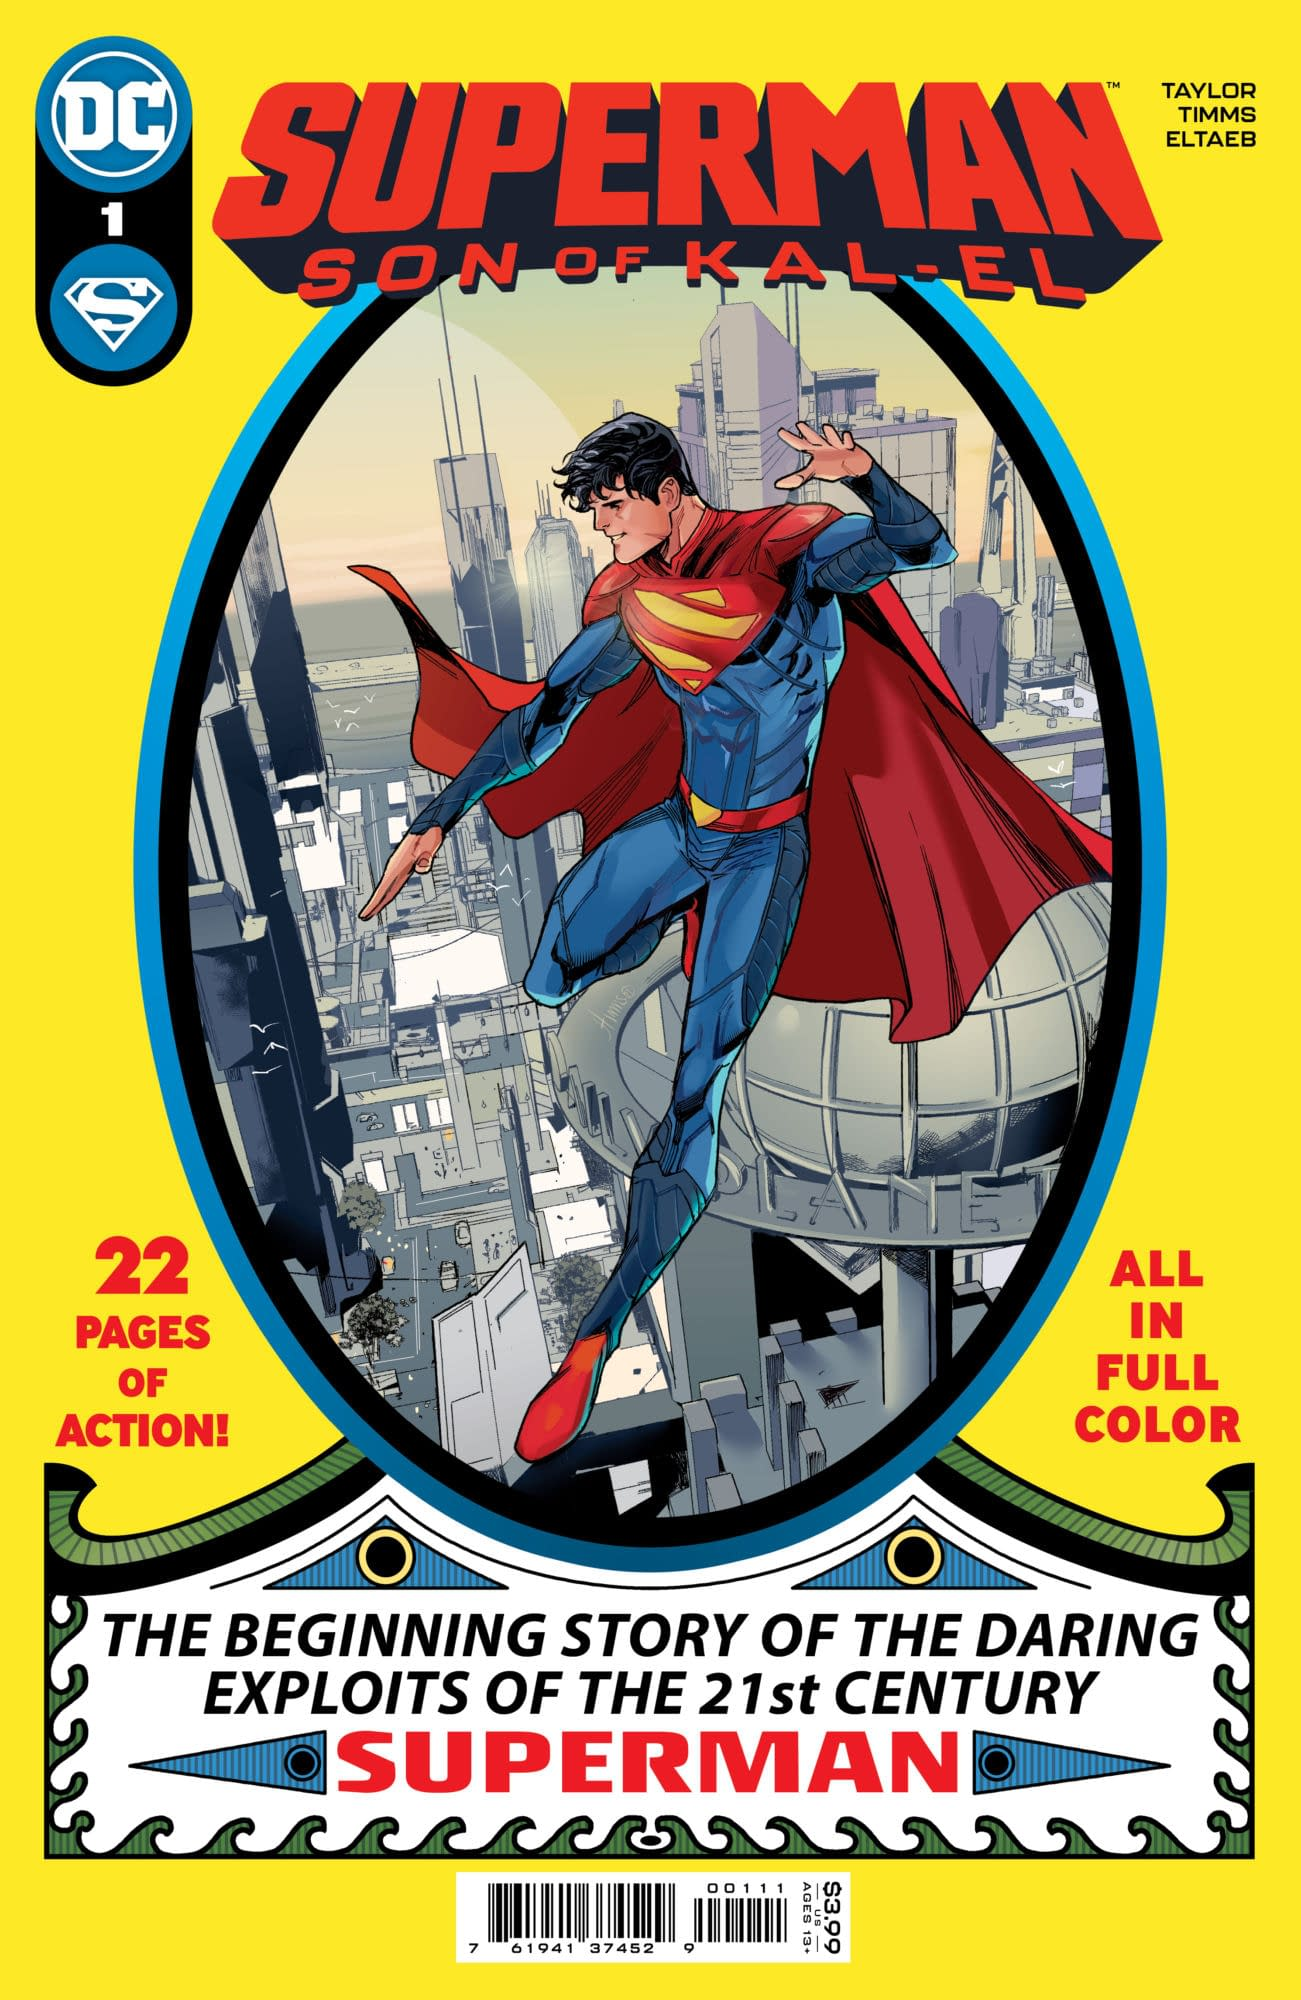 This week from DC COMICS!